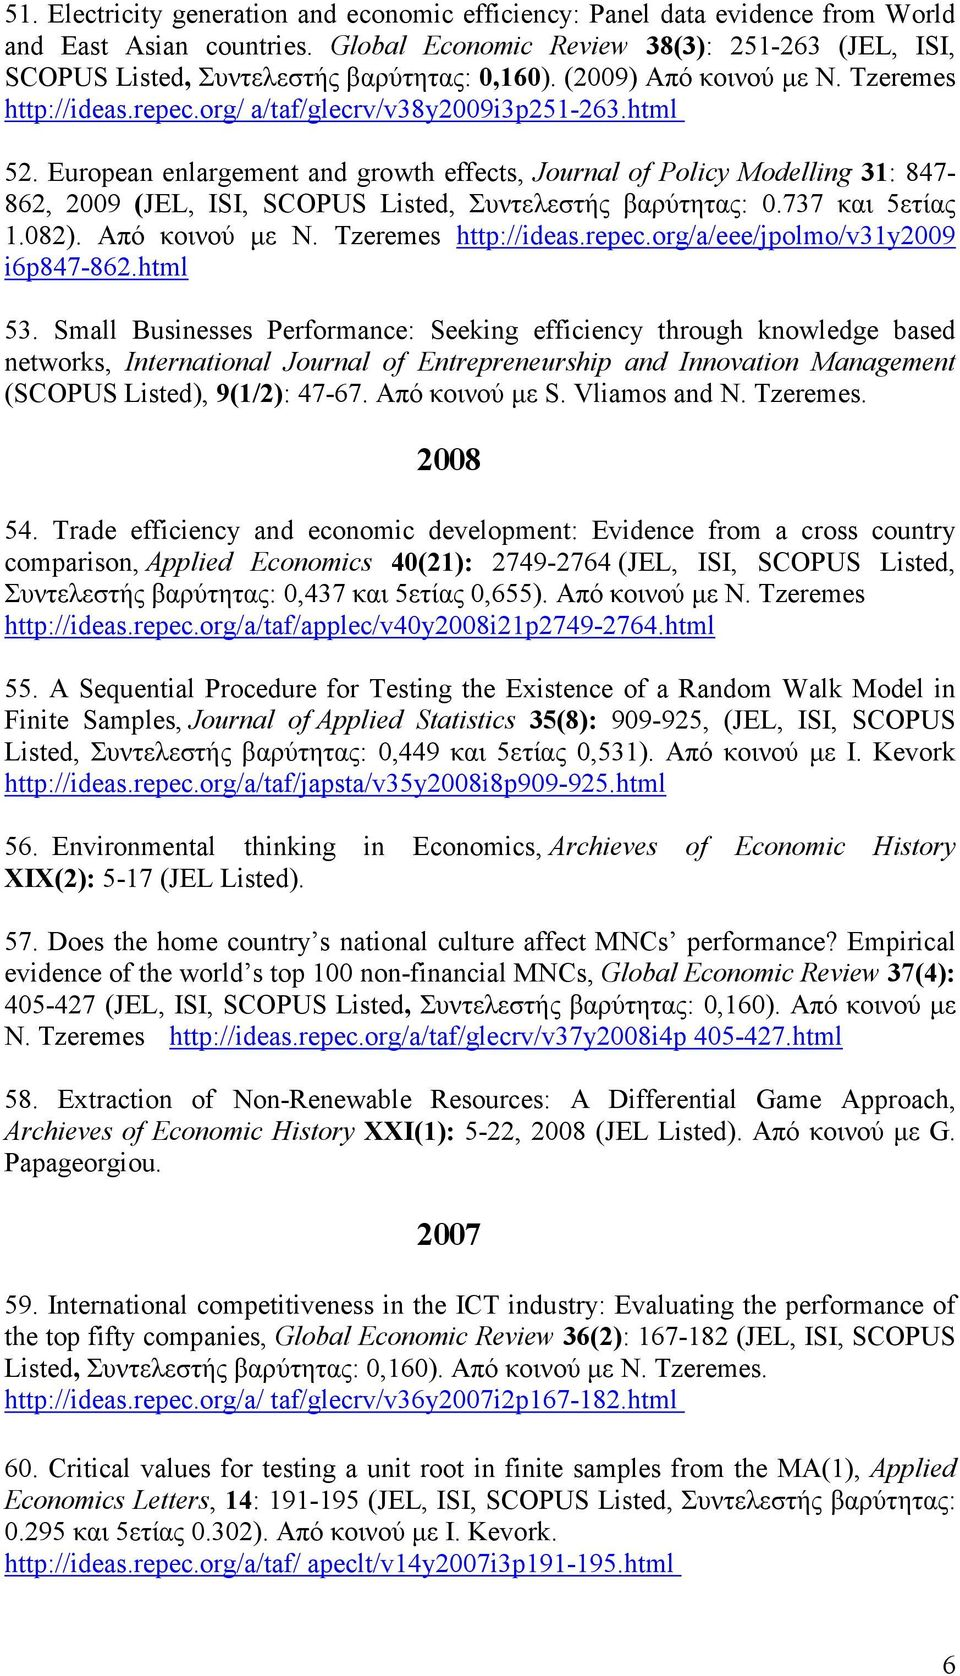 European enlargement and growth effects, Journal of Policy Modelling 31: 847-862, 2009 (JEL, ISI, SCOPUS Listed, Συντελεστής βαρύτητας: 0.737 και 5ετίας 1.082). Από κοινού µε N. Τzeremes http://ideas.